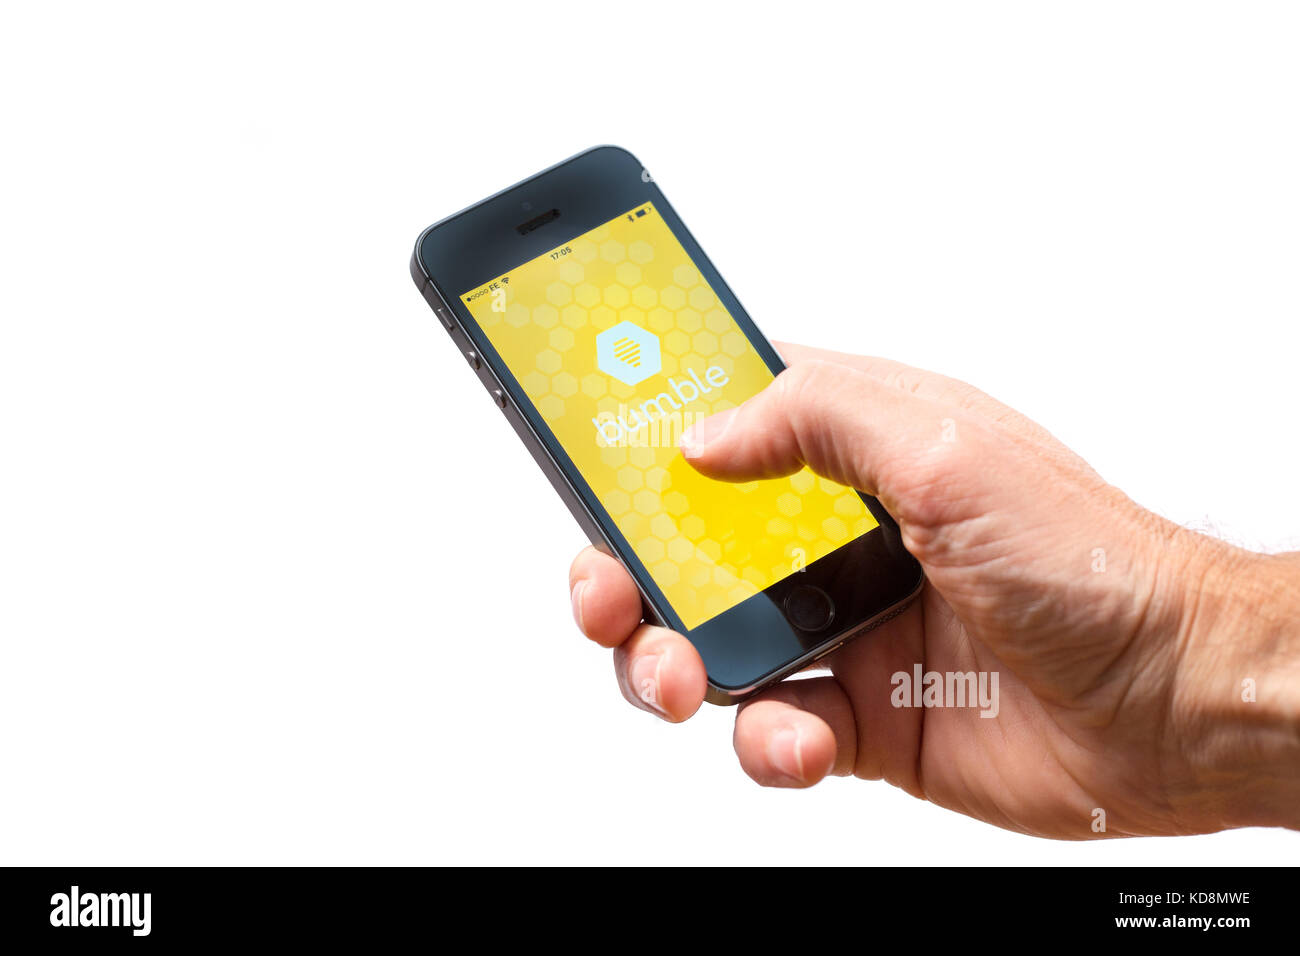 Dating apps on phone